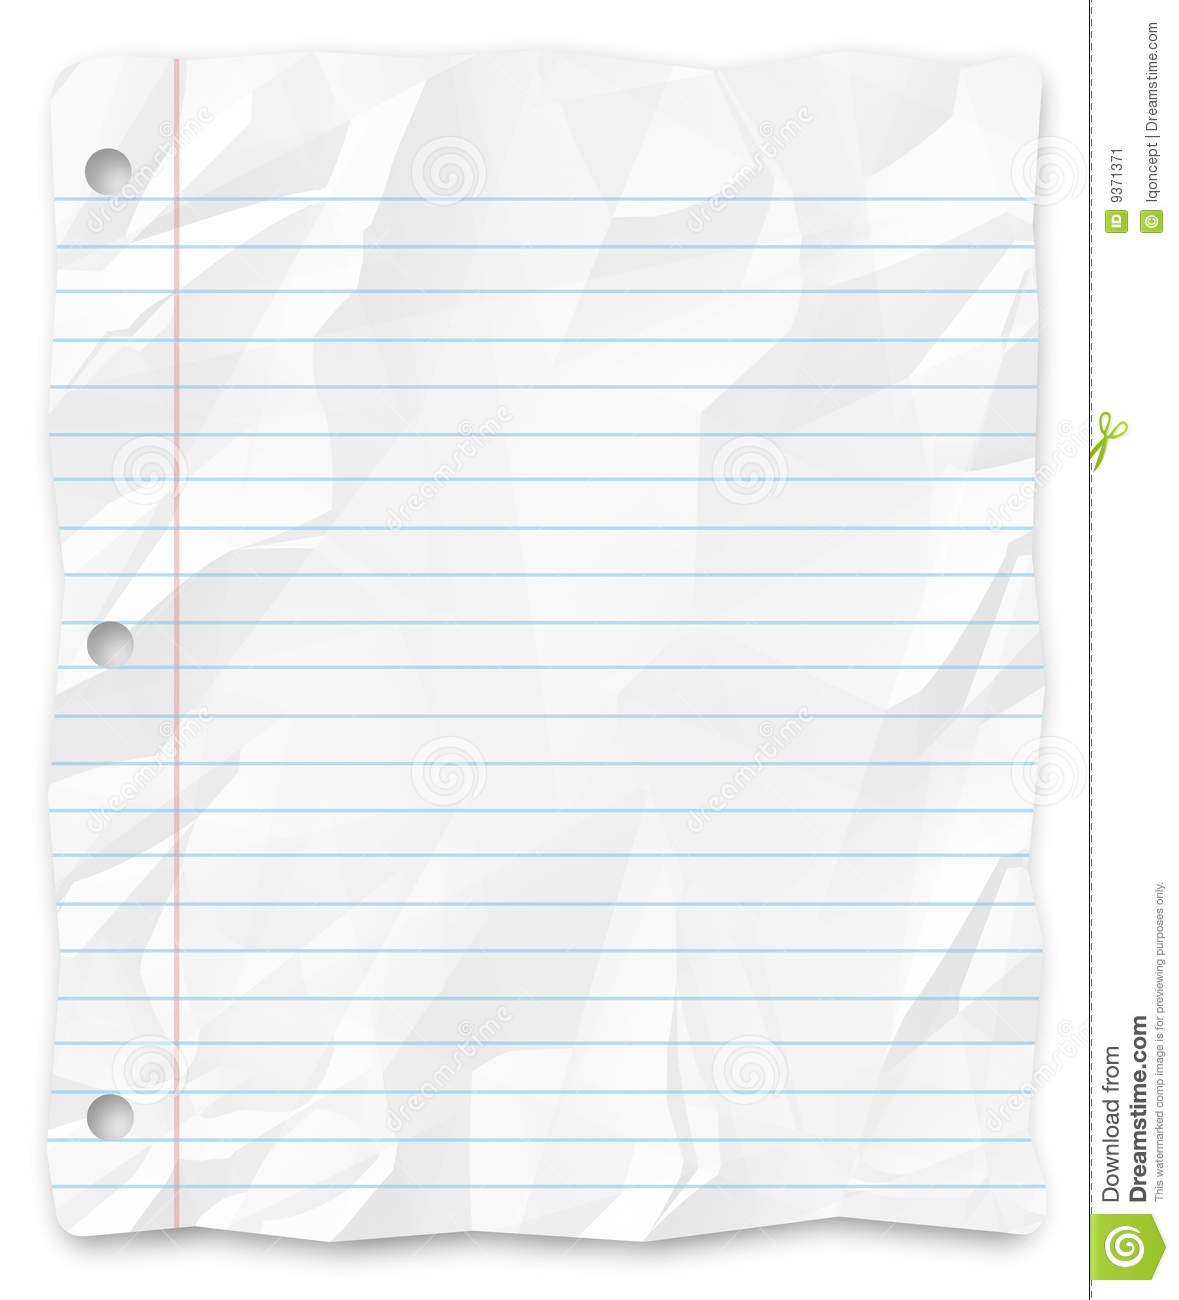 Student Writing Paper Lined Three-Hole Punched Stock Image - Image ...